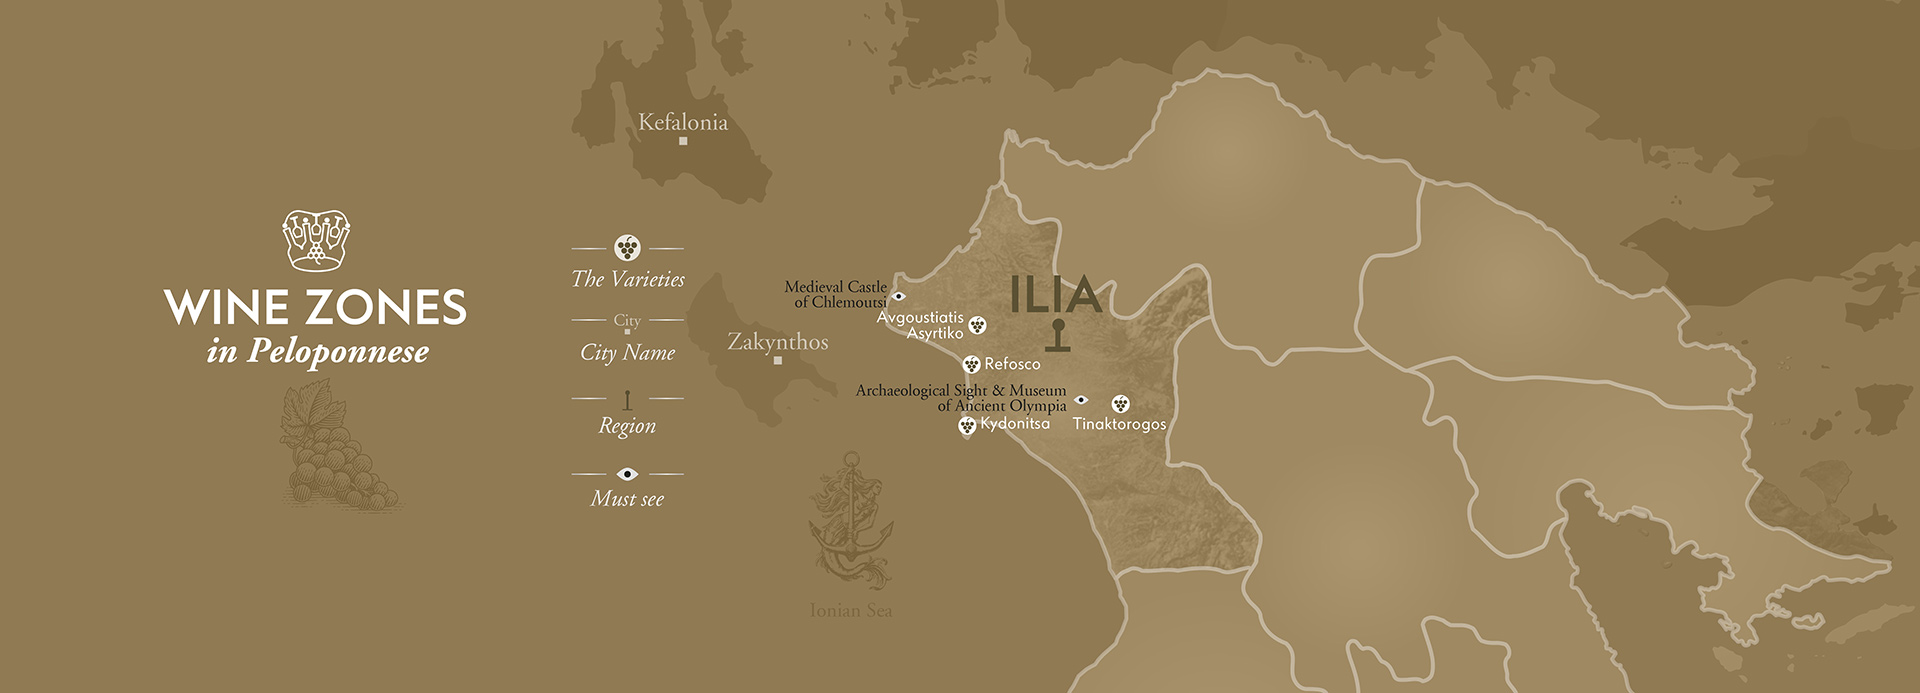 Ilia Wineries Map by The Wine Connoisseurs